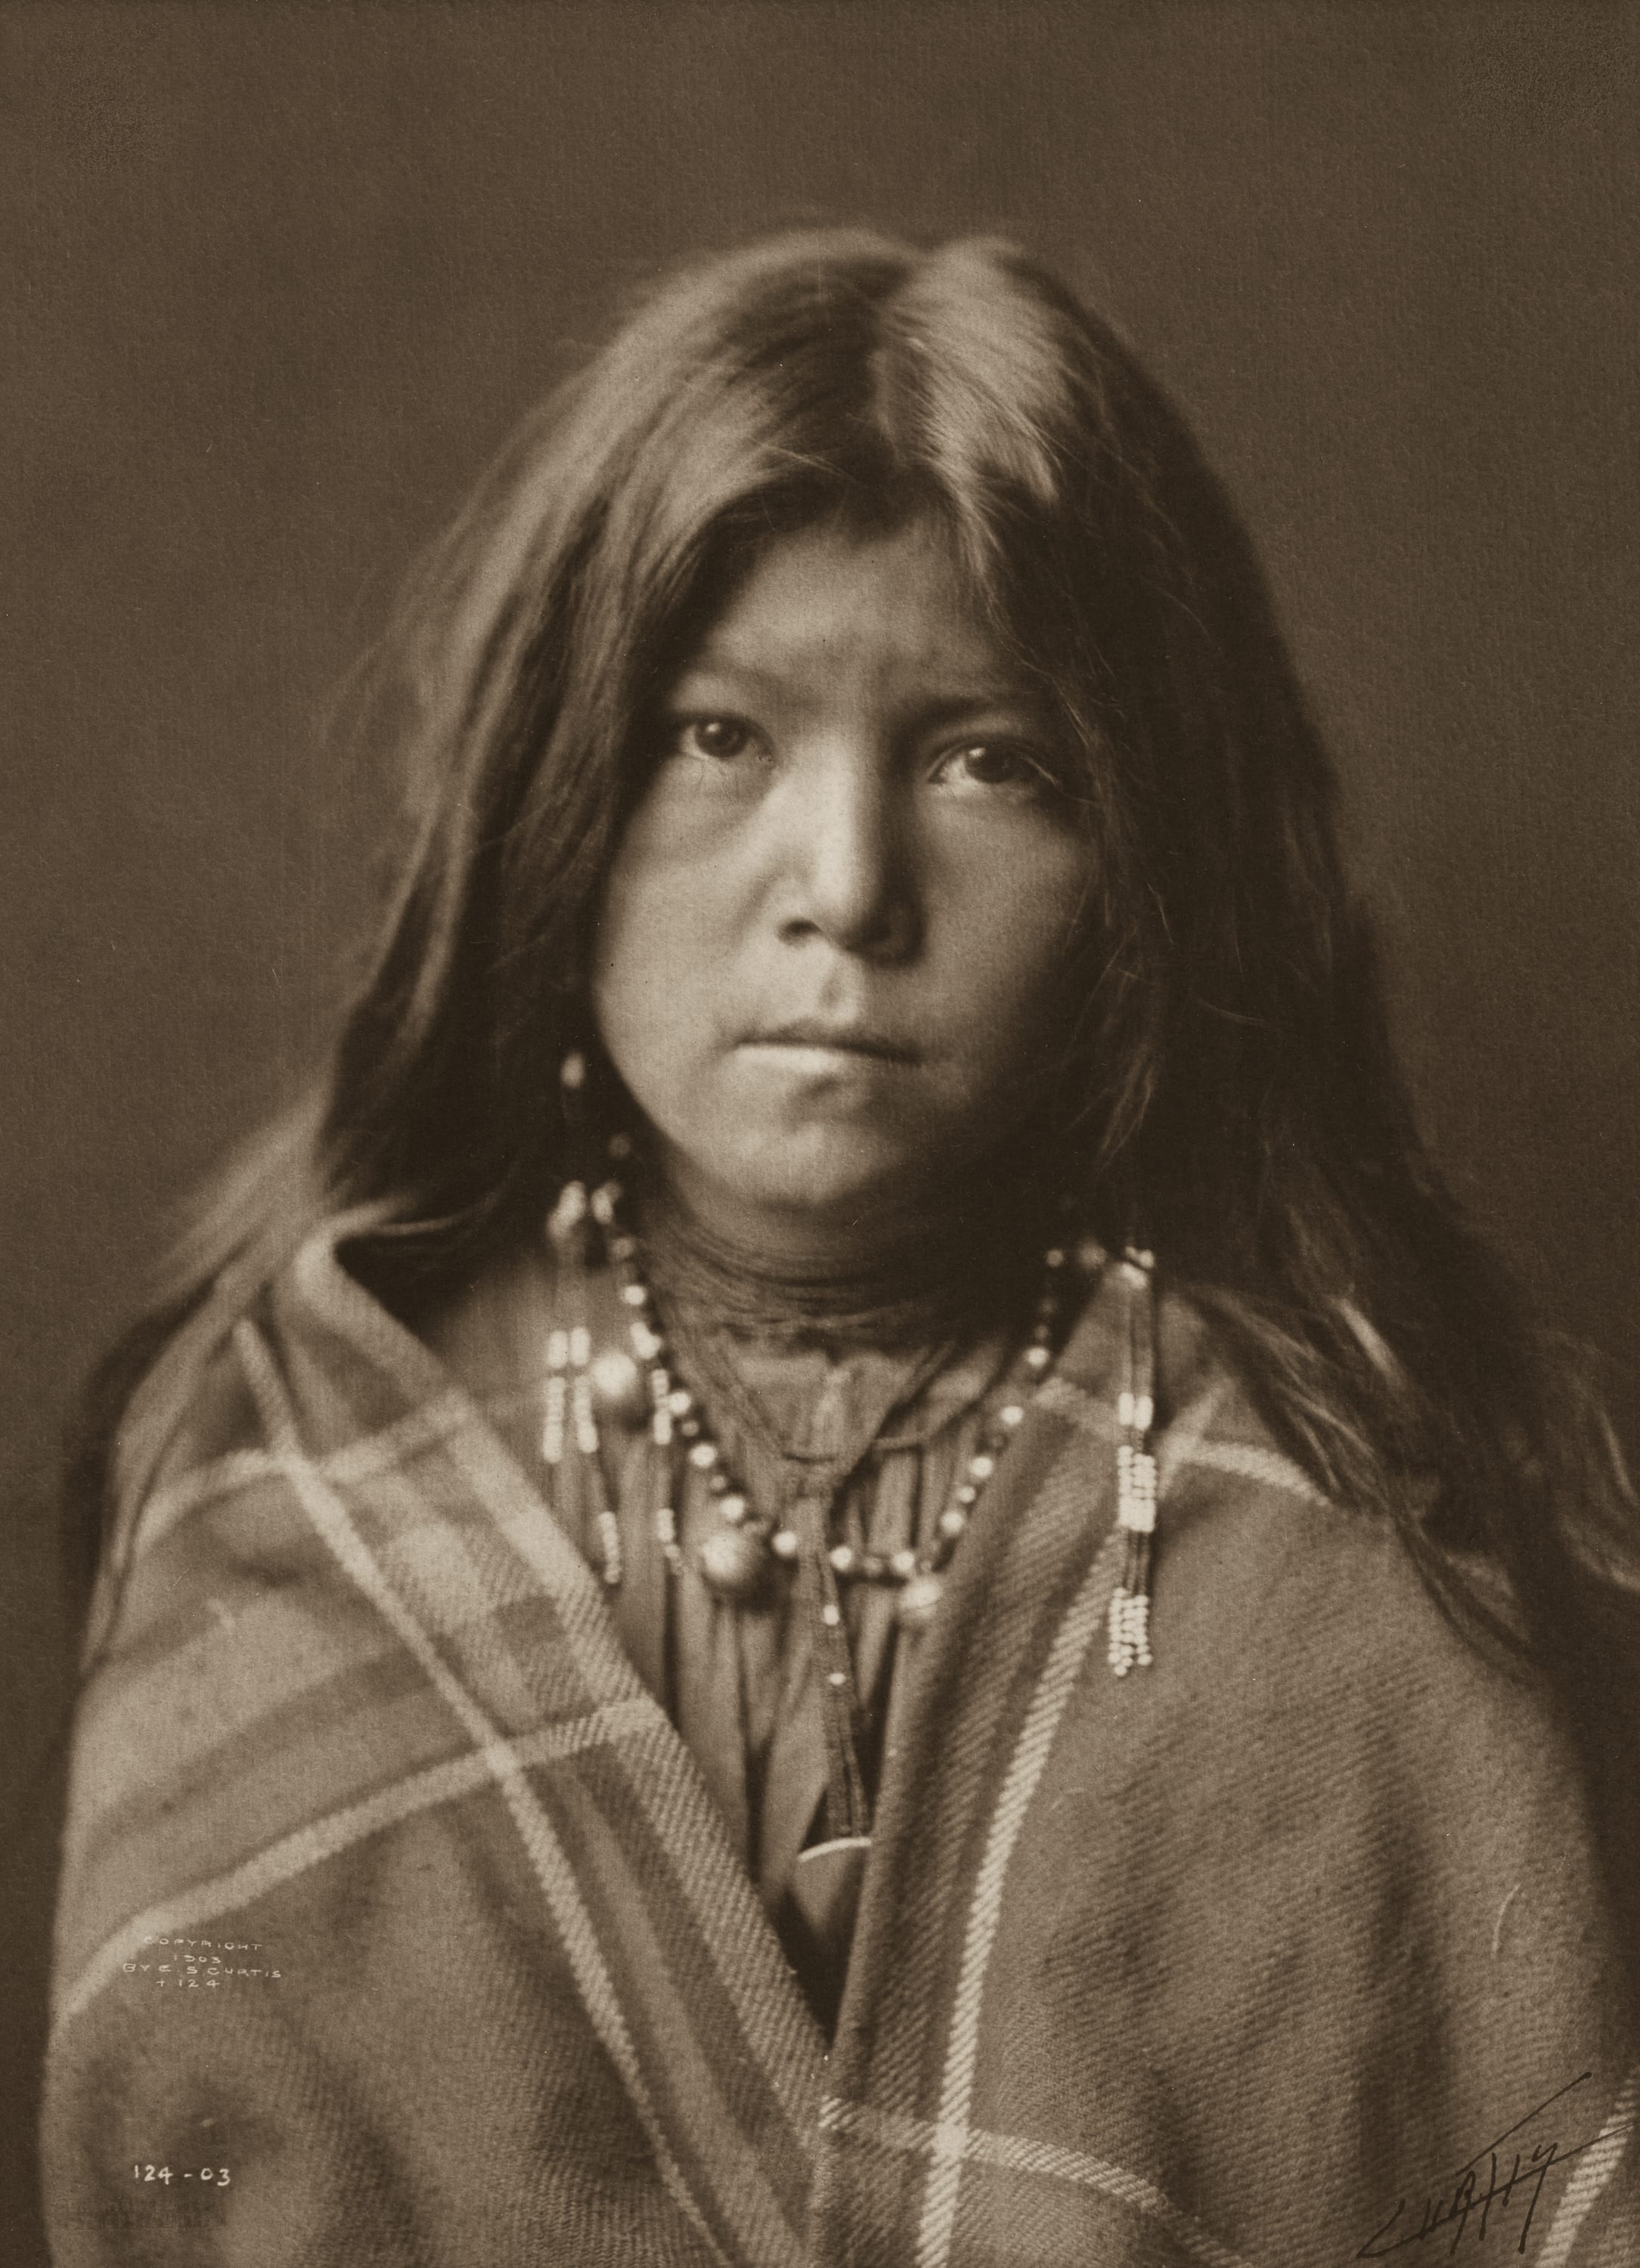 By Her Hand: Native American Women, Their Art, and The Photographs of Edward S. Curtis | Interview with Seth Hopkins of the Booth Western Art Museum